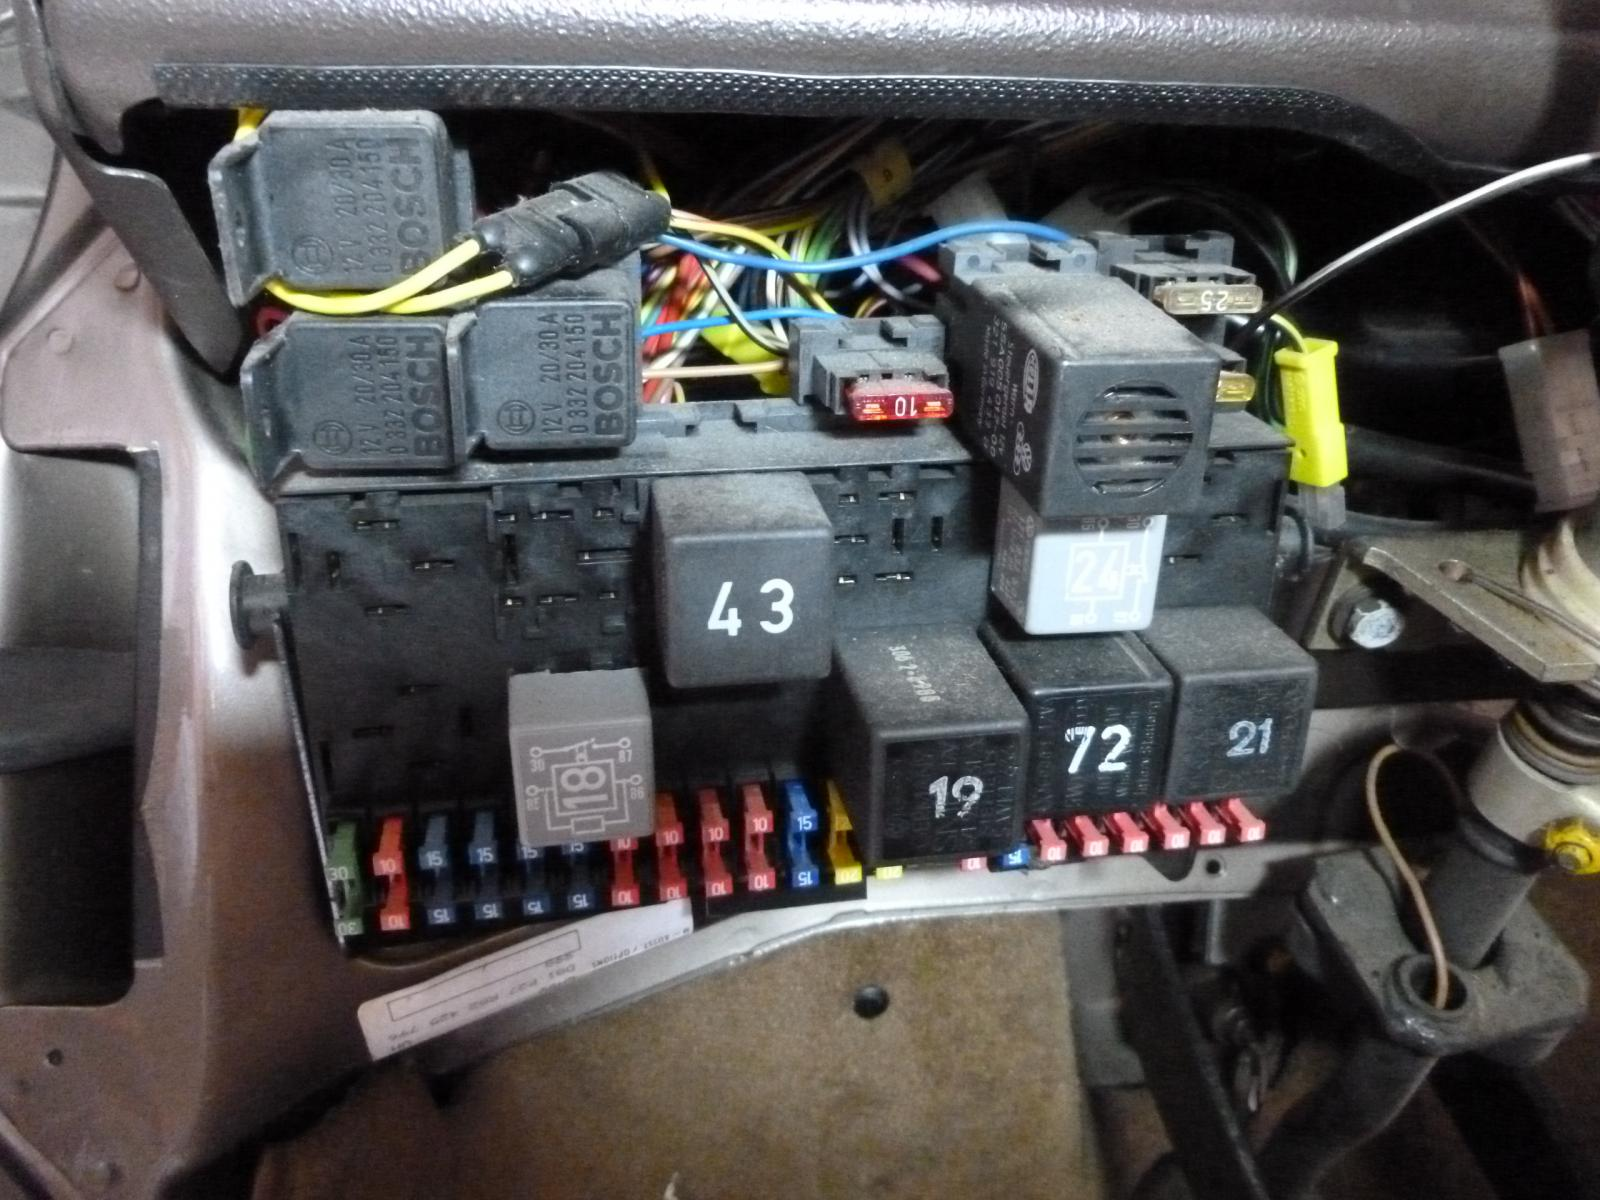 Vw Vanagon Fuse Box Cover 25 Wiring Diagram Images Volkswagen Eurovan Image May Have Been Reduced In Size Click To View Fullscreen Parts Ebay Mf5gfvm Mmxhdqpmcm M9a